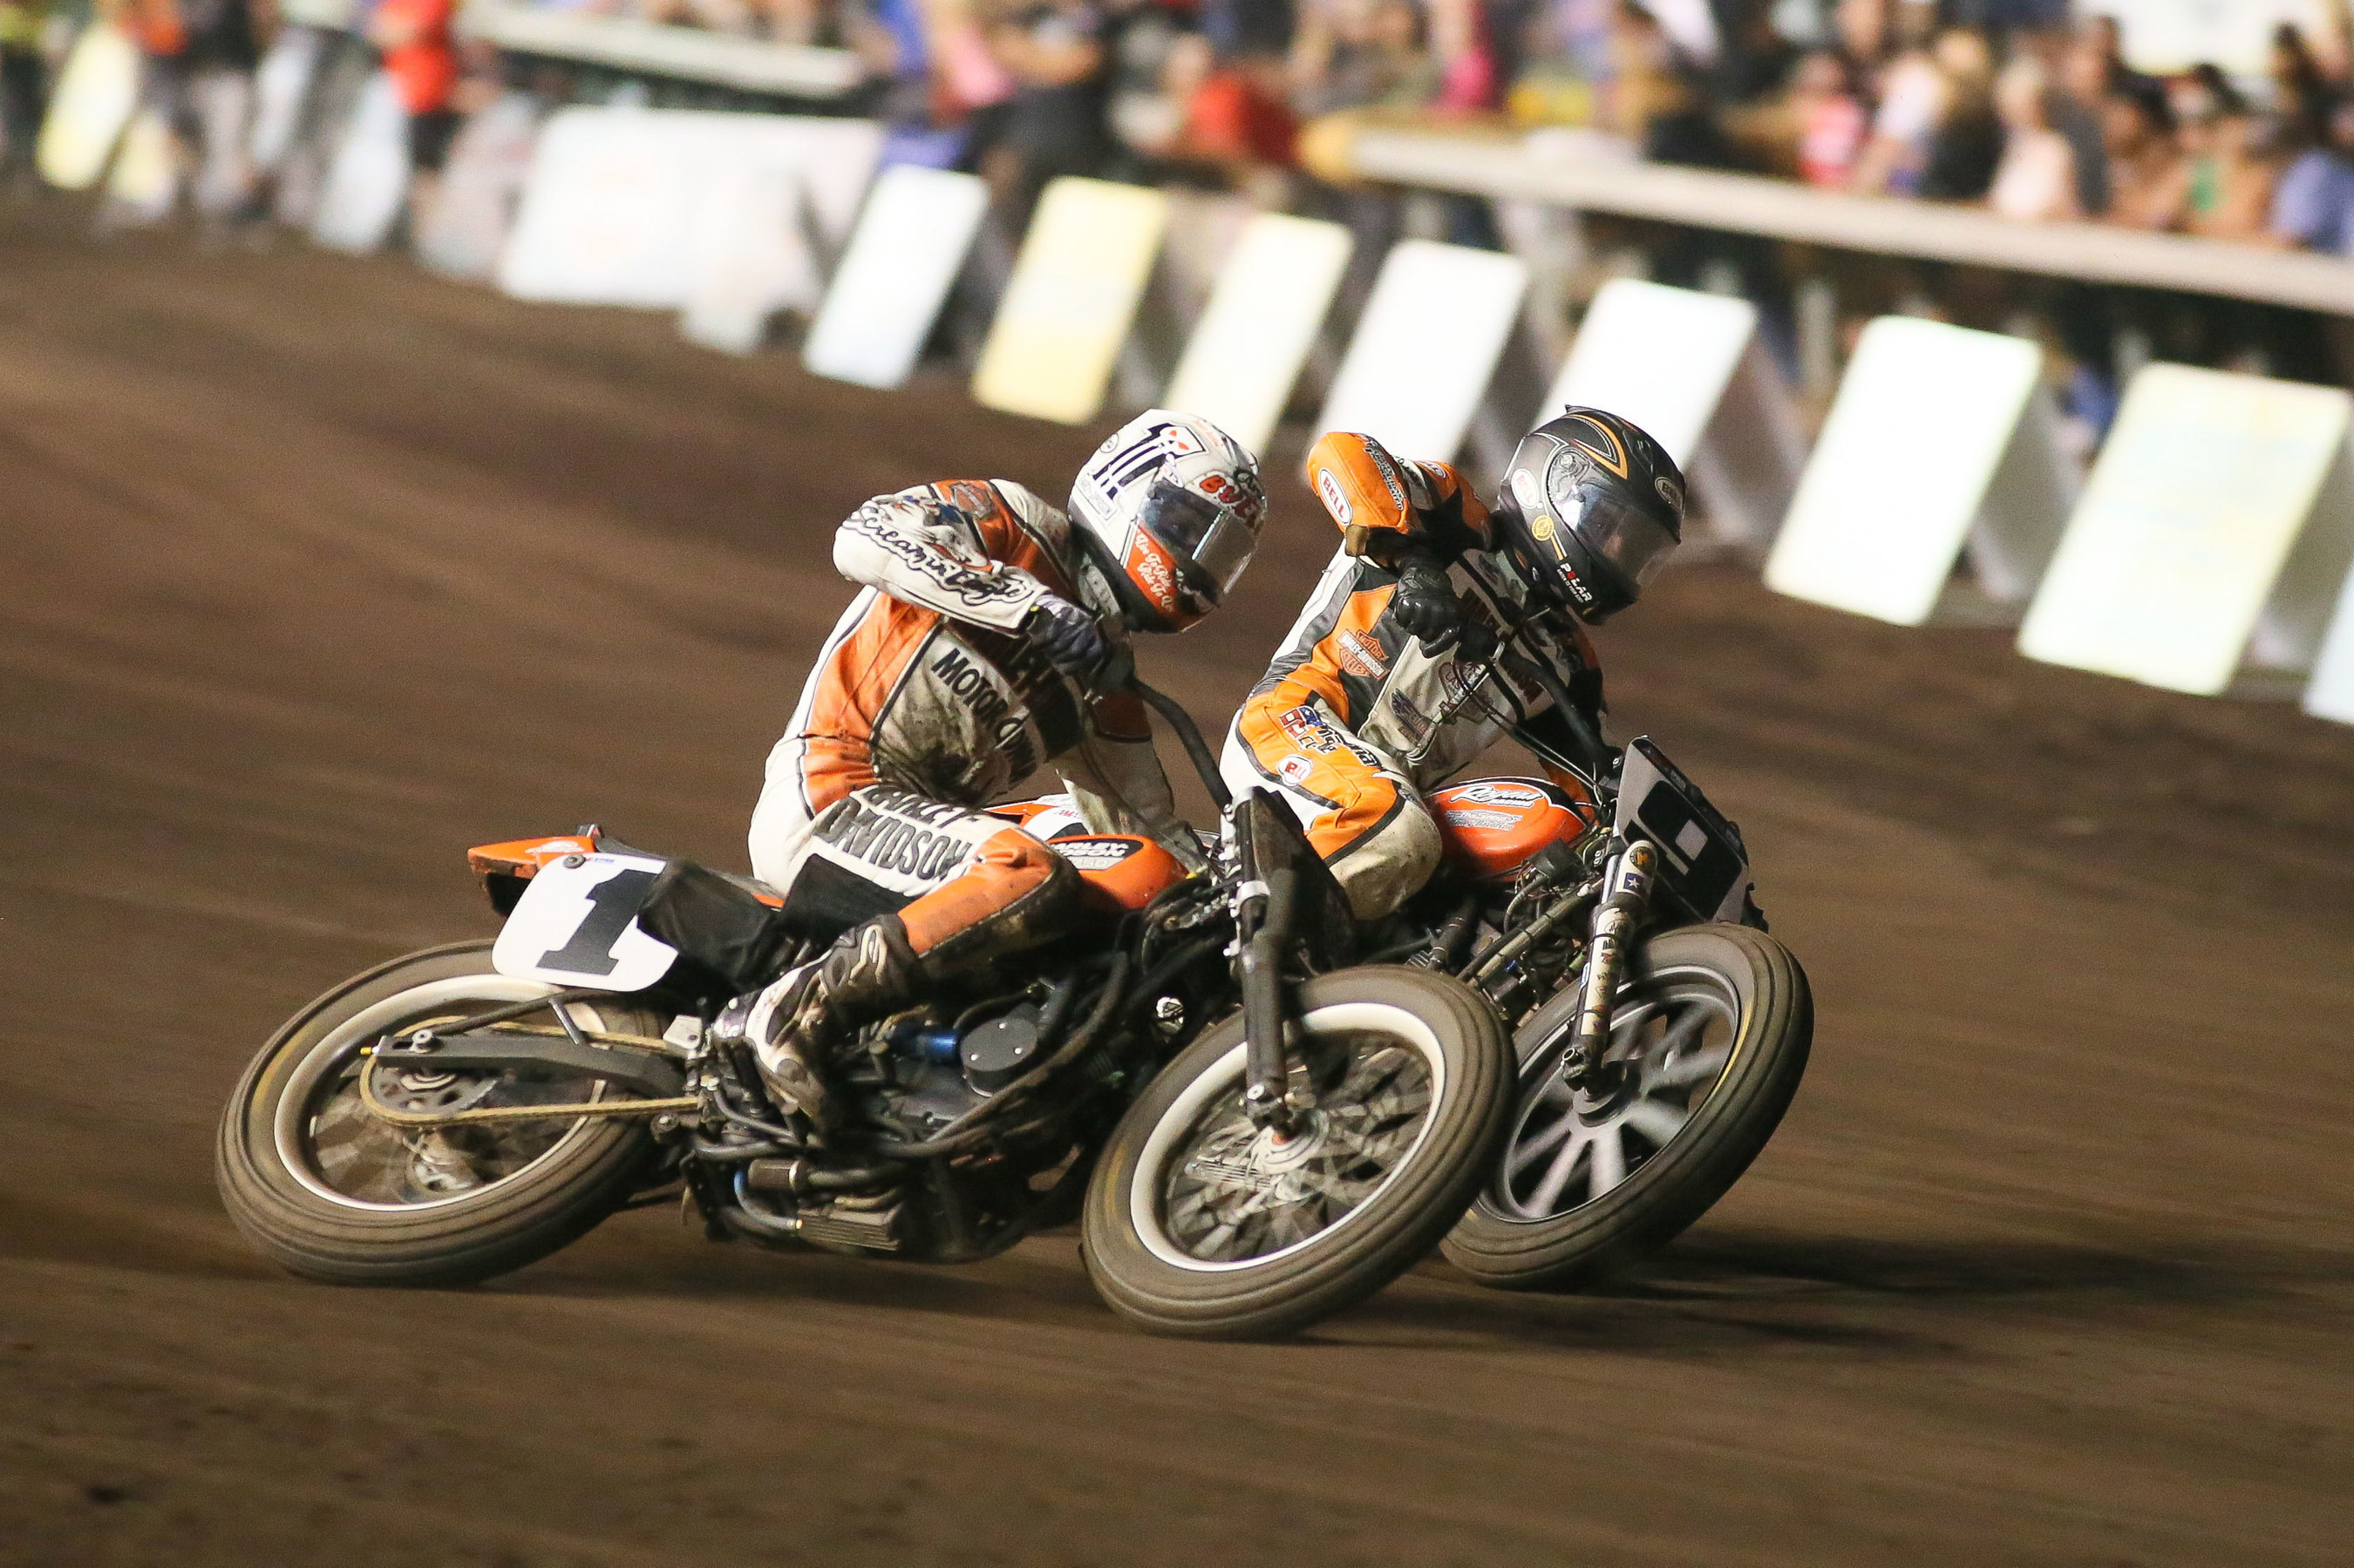 The inaugural race will take place June 4 in an invitational format with athletes like Brad Baker (left), Jared Mees (right) and others from around the world receiving the opportunity to tear up the track at Circuit of the Americas.